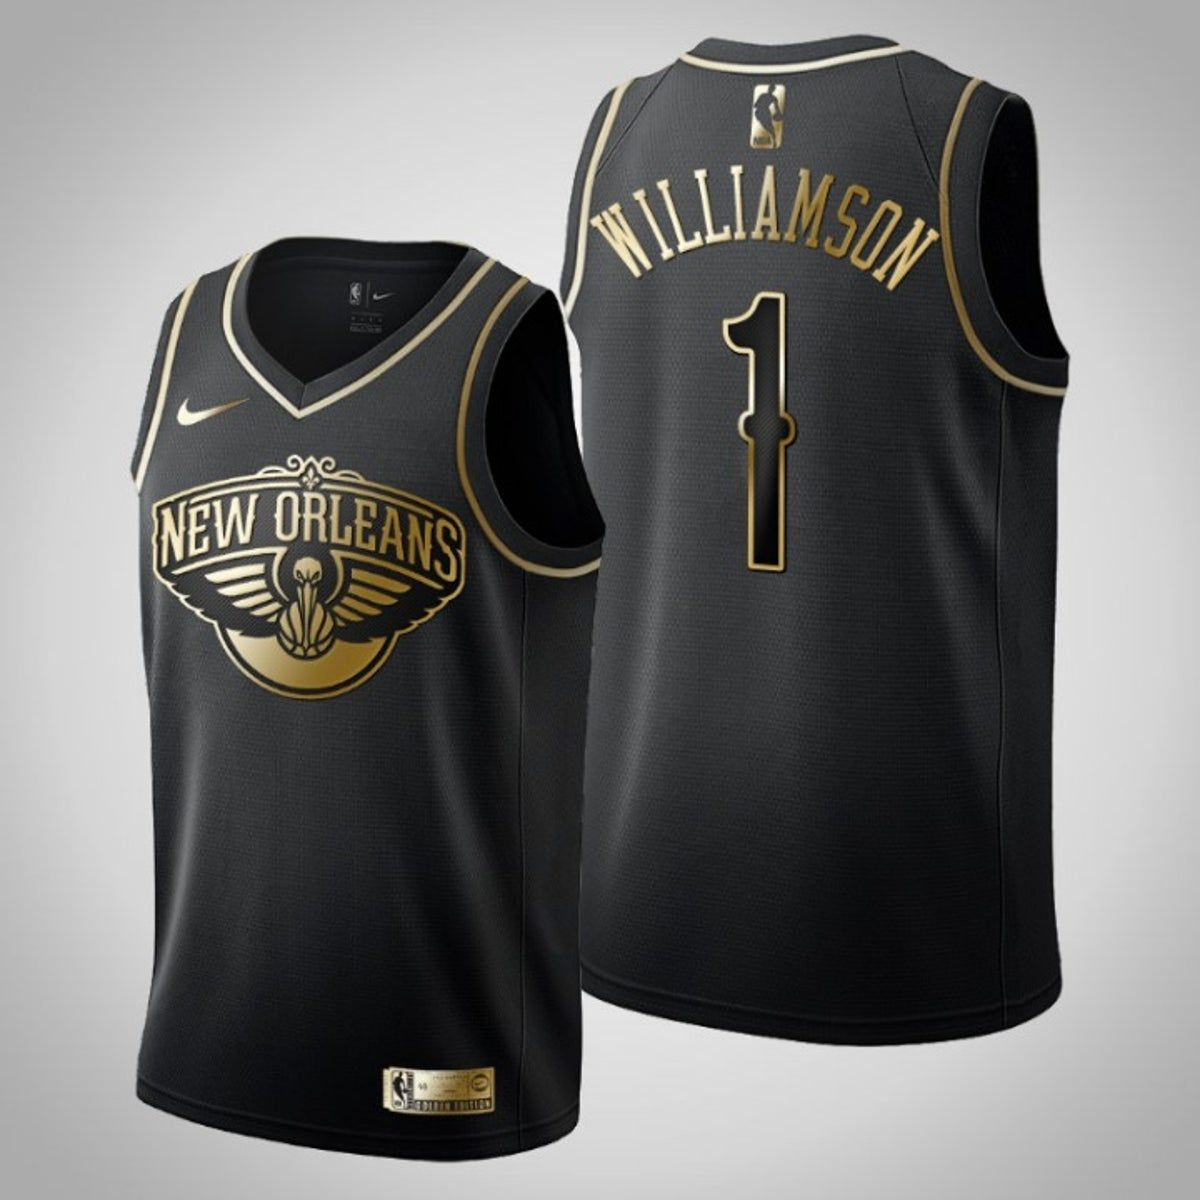 Zion Williamson Nba Jersey In 2020 Nba Jersey Basketball Clothes Jersey